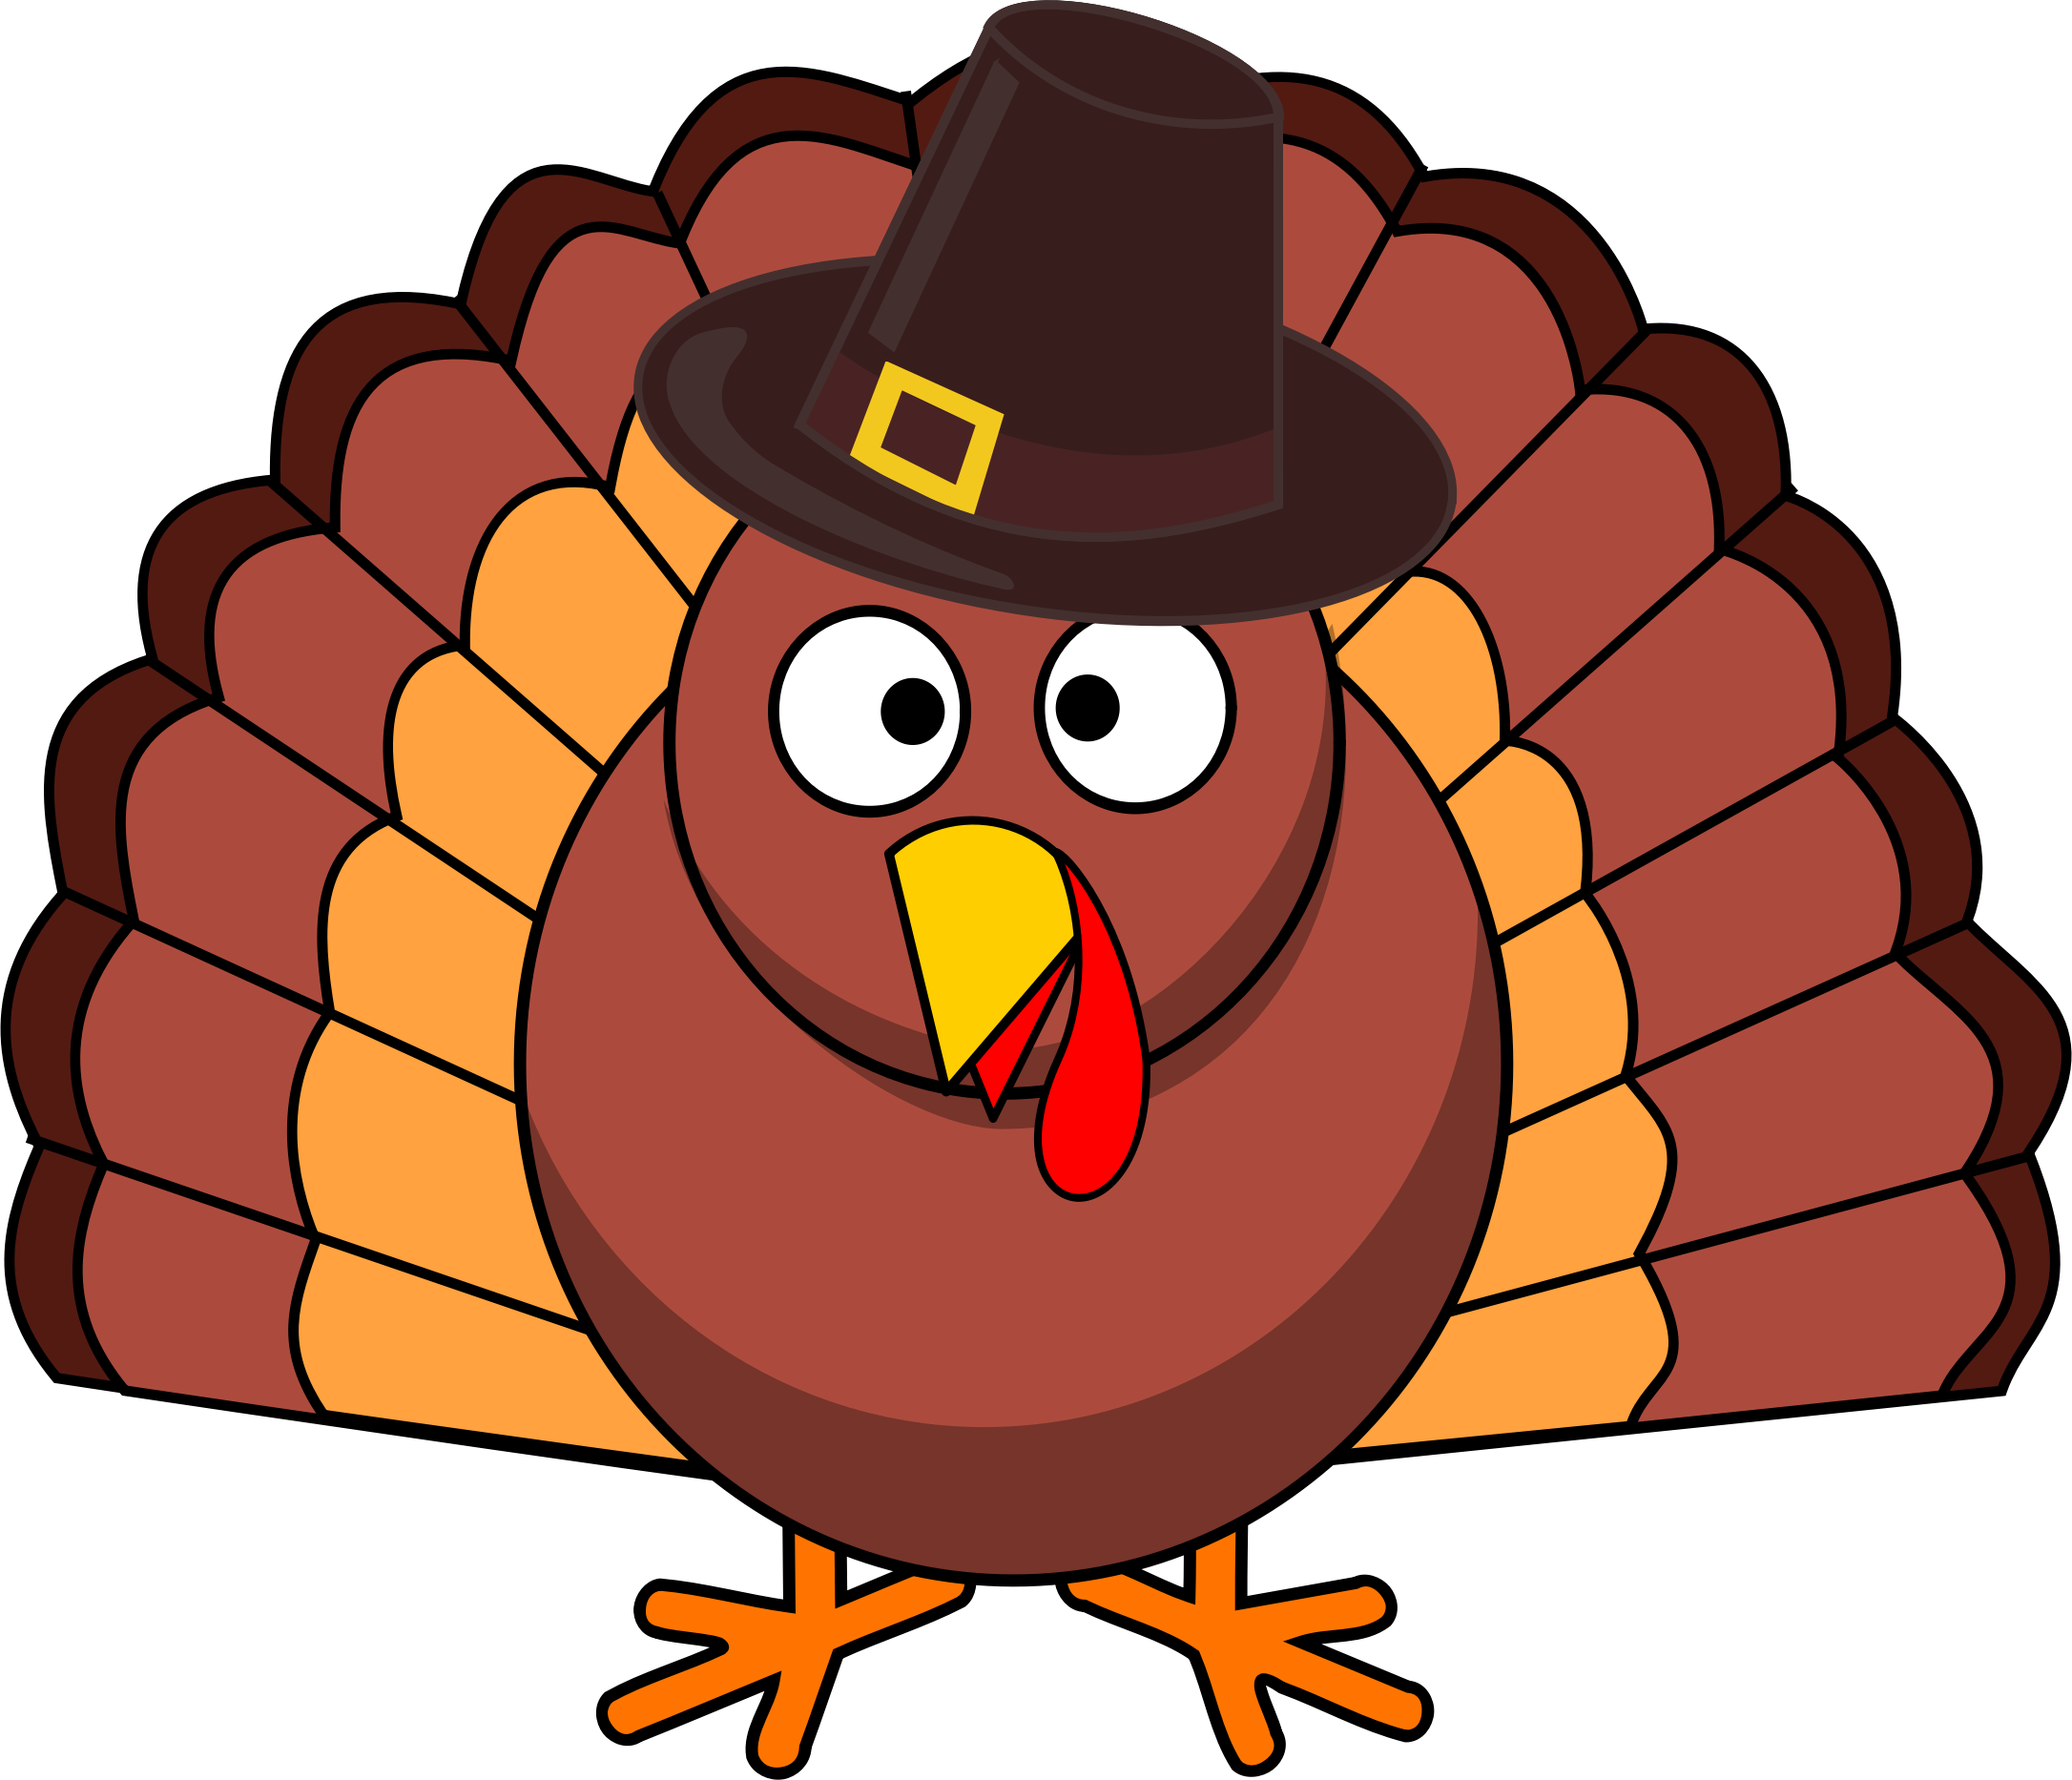 Turkey clipart panic image library download Thanksgiving Turkey Drawing at GetDrawings.com | Free for personal ... image library download